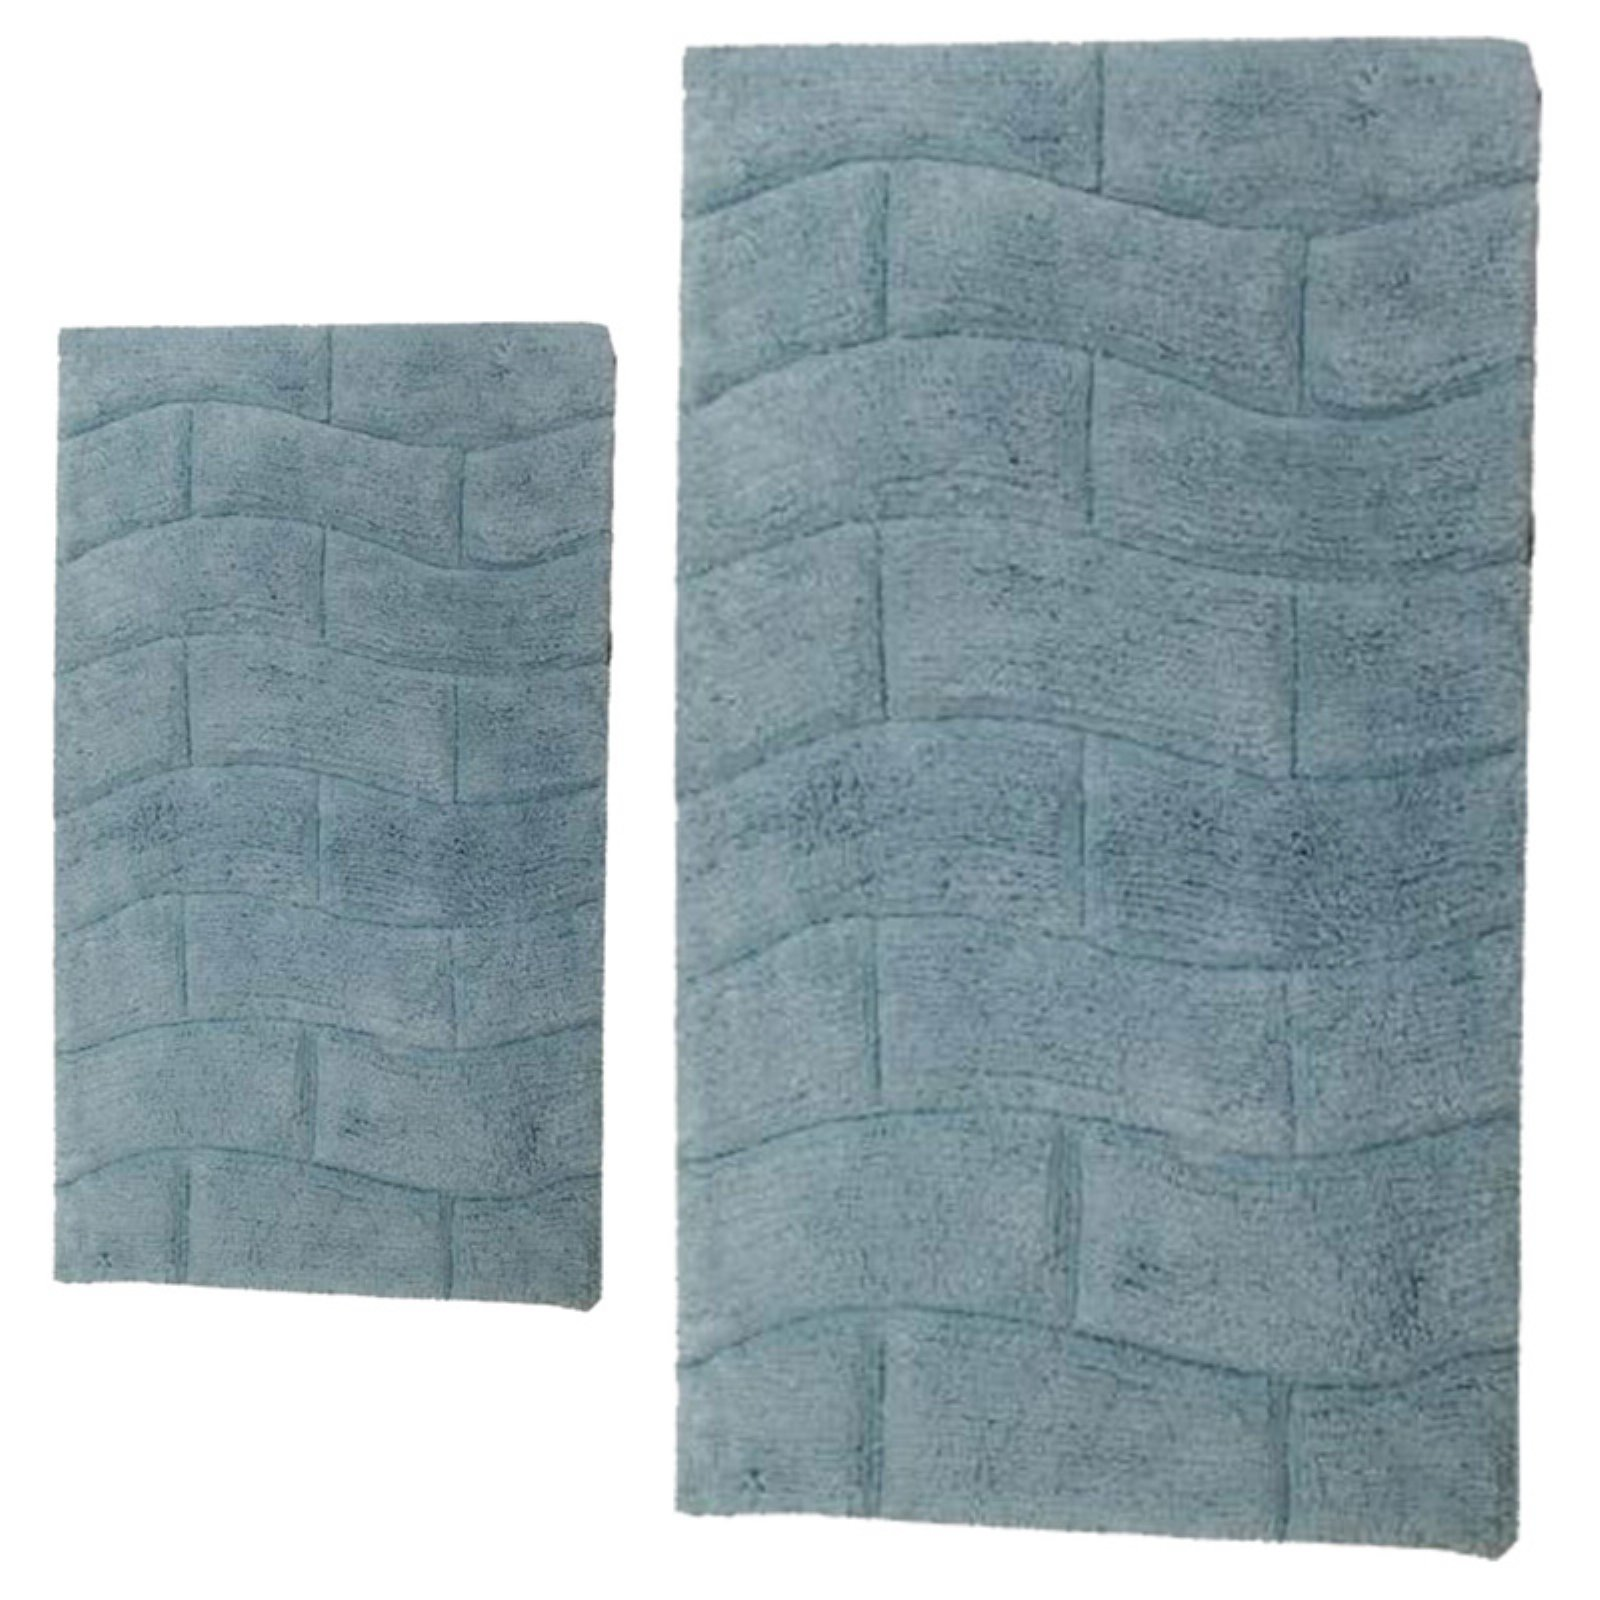 Elegance Collection New Tile Bath Rug - Set of 2